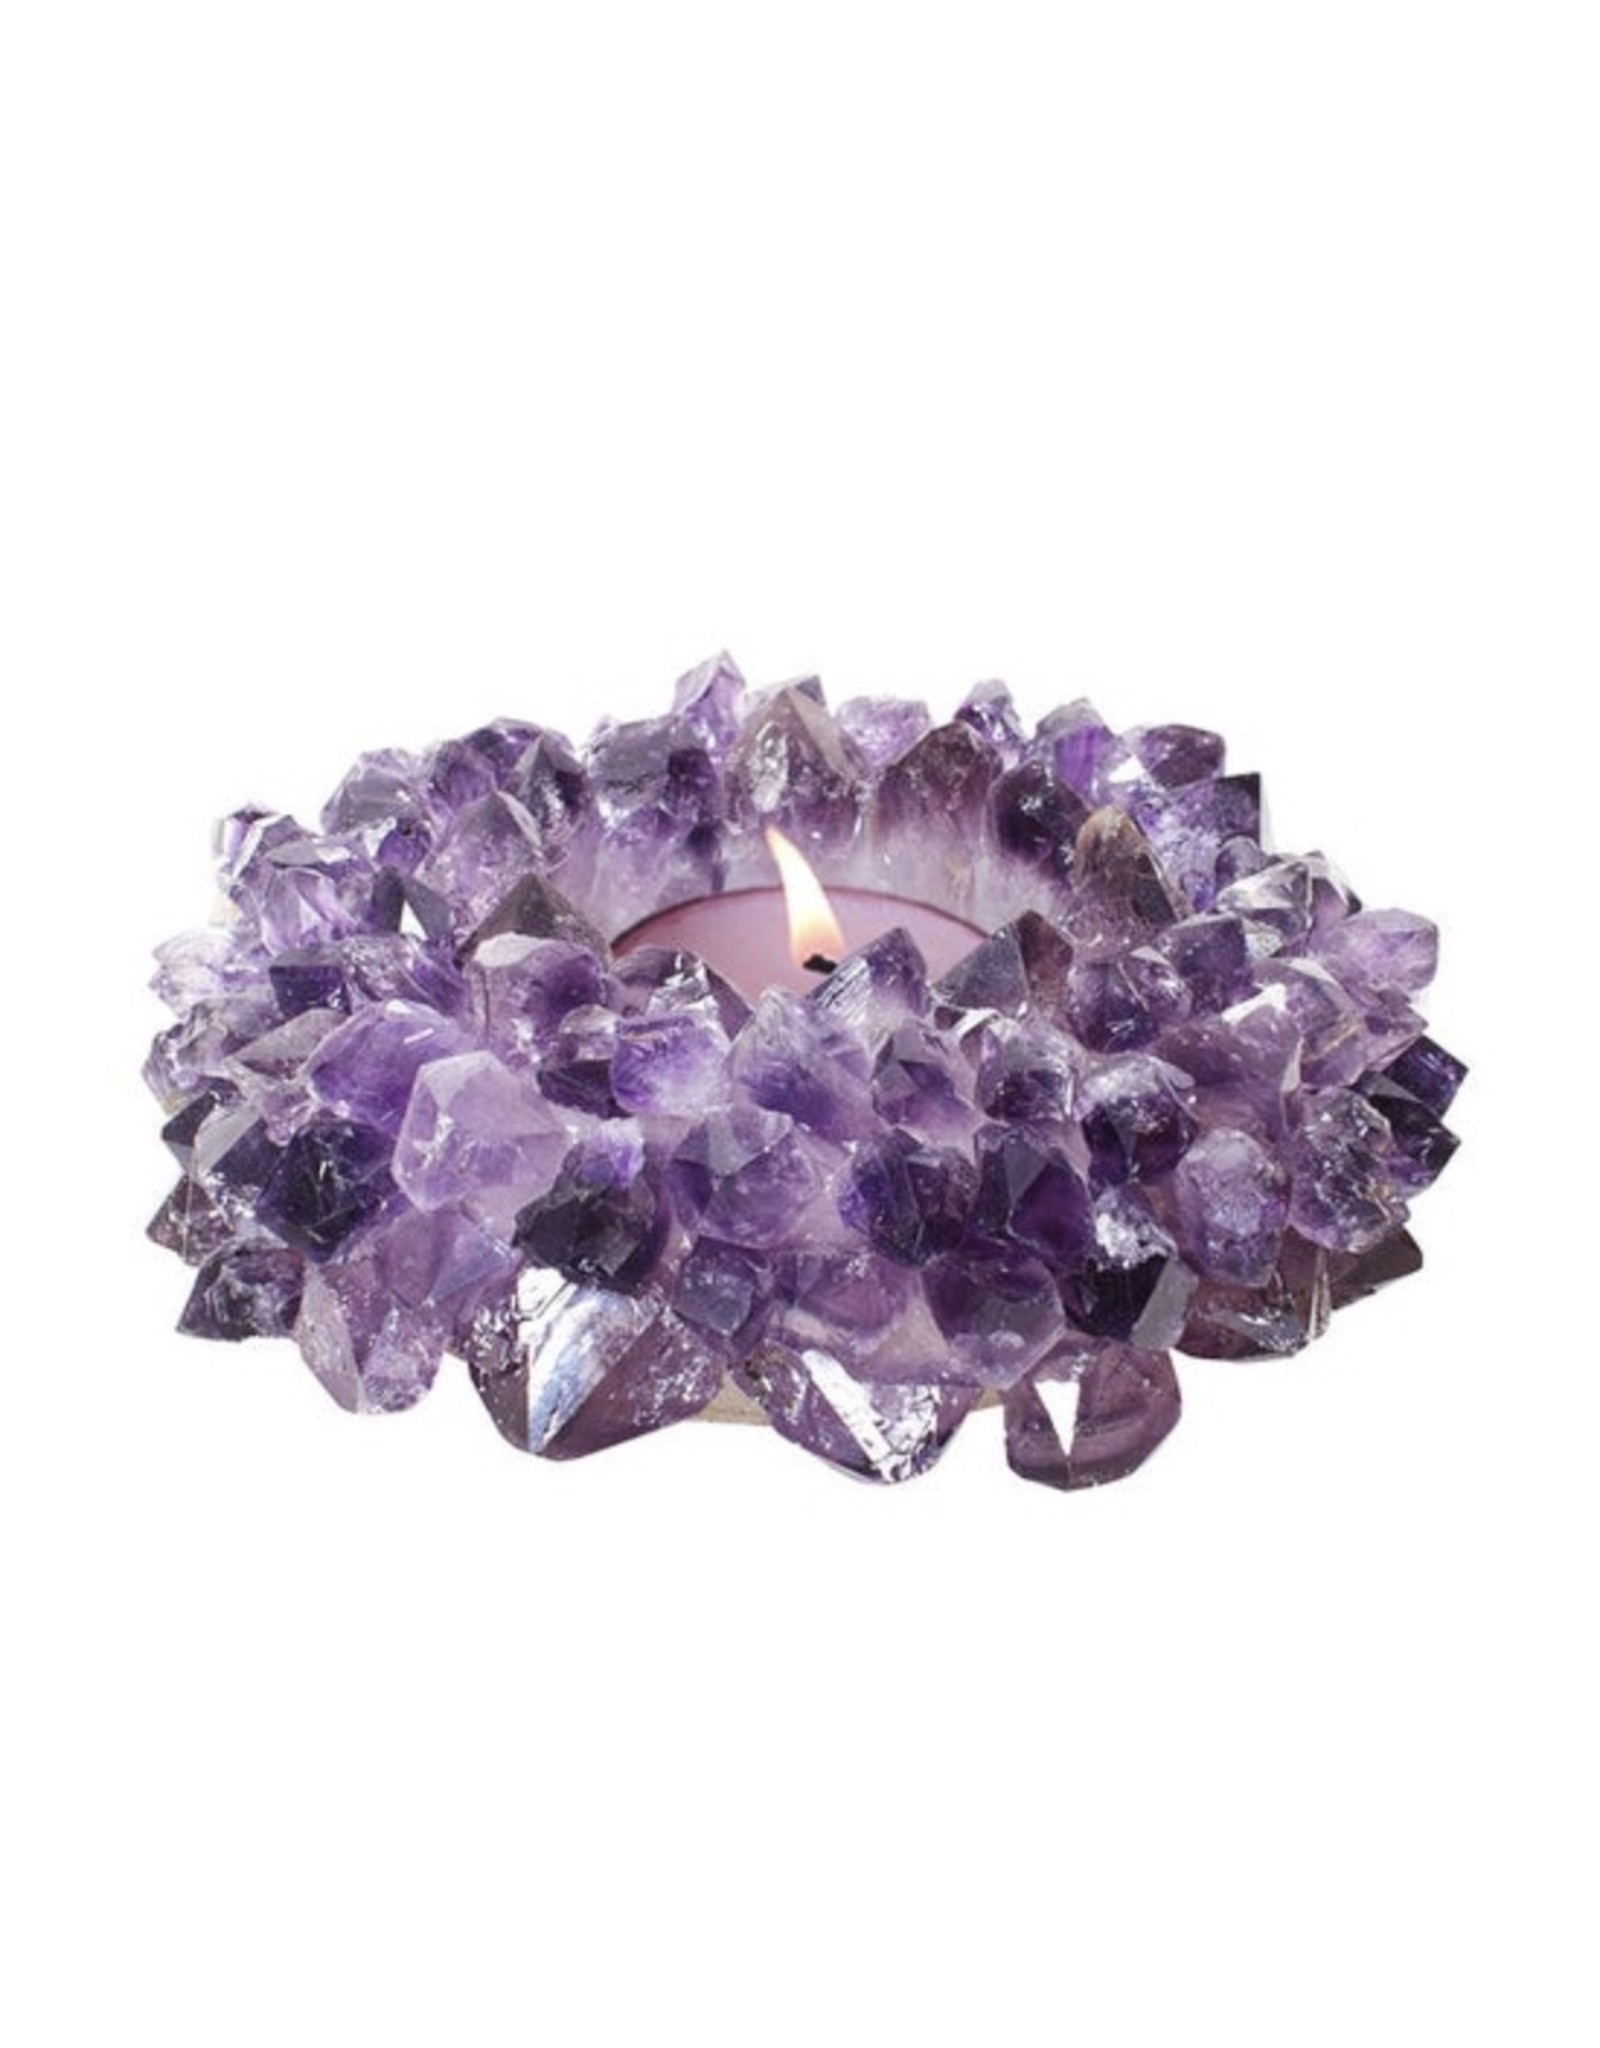 Amethyst Crystal Planter/Candle - Large